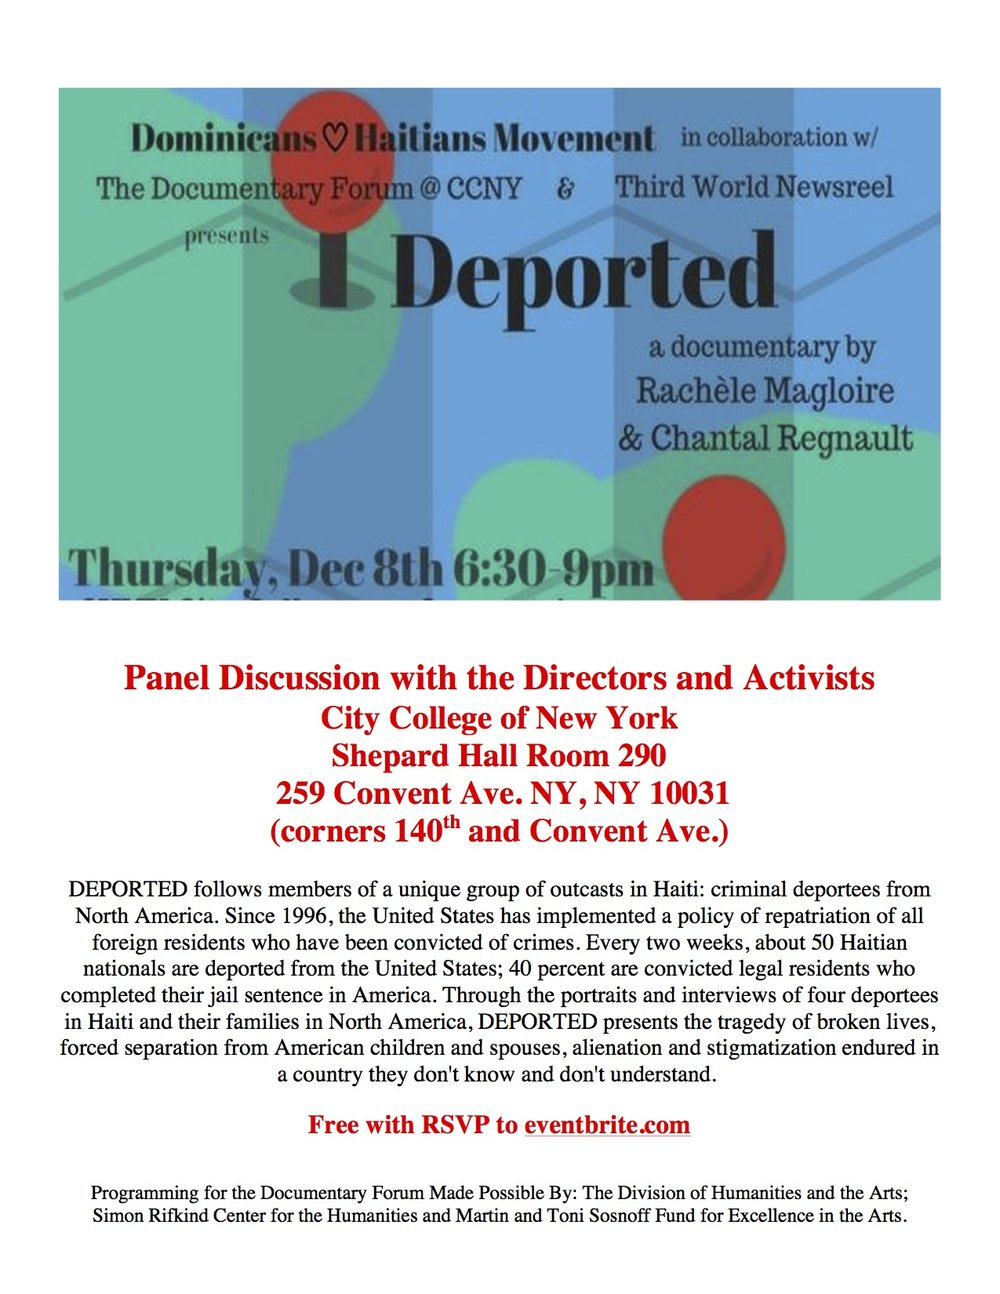 Deported-with-DominicansLoveHaitians-flyer.jpg